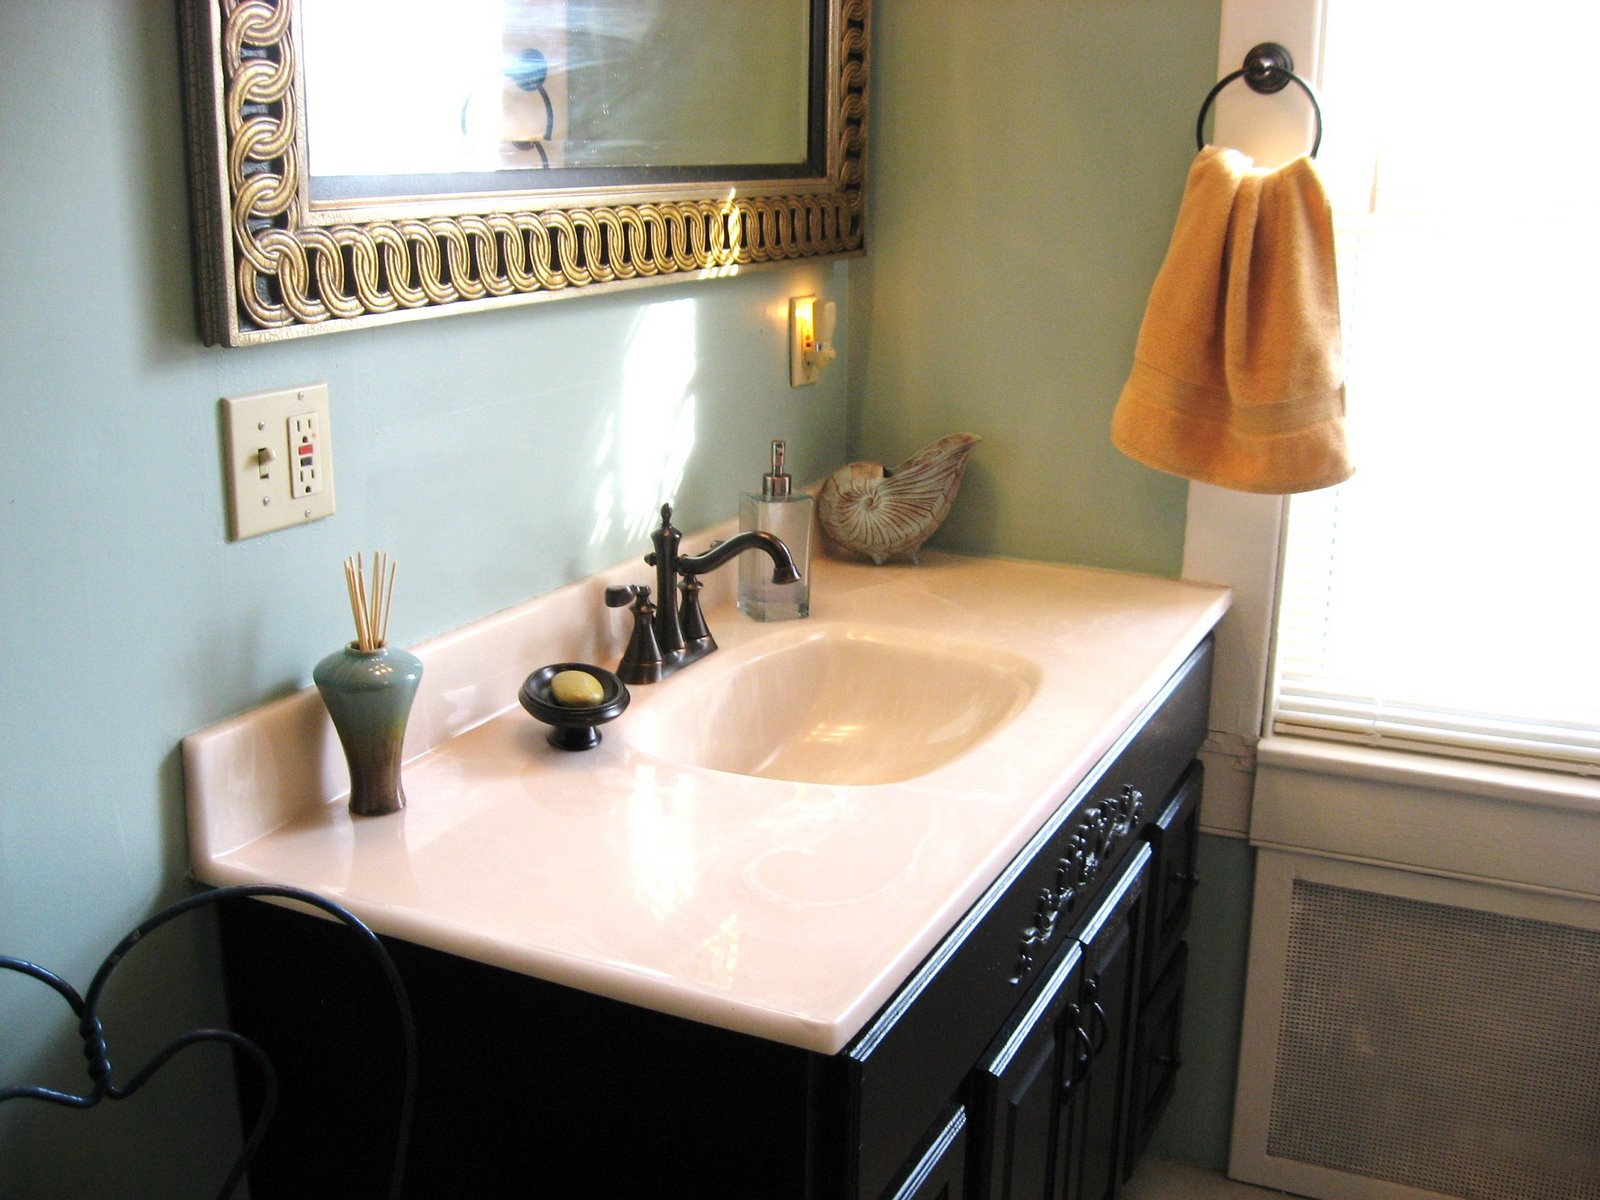 Benjamin moore palladian blue bathroom - And It S The Color Of The Hall Bathroom At That Old House So Of Course We Had To Choose It